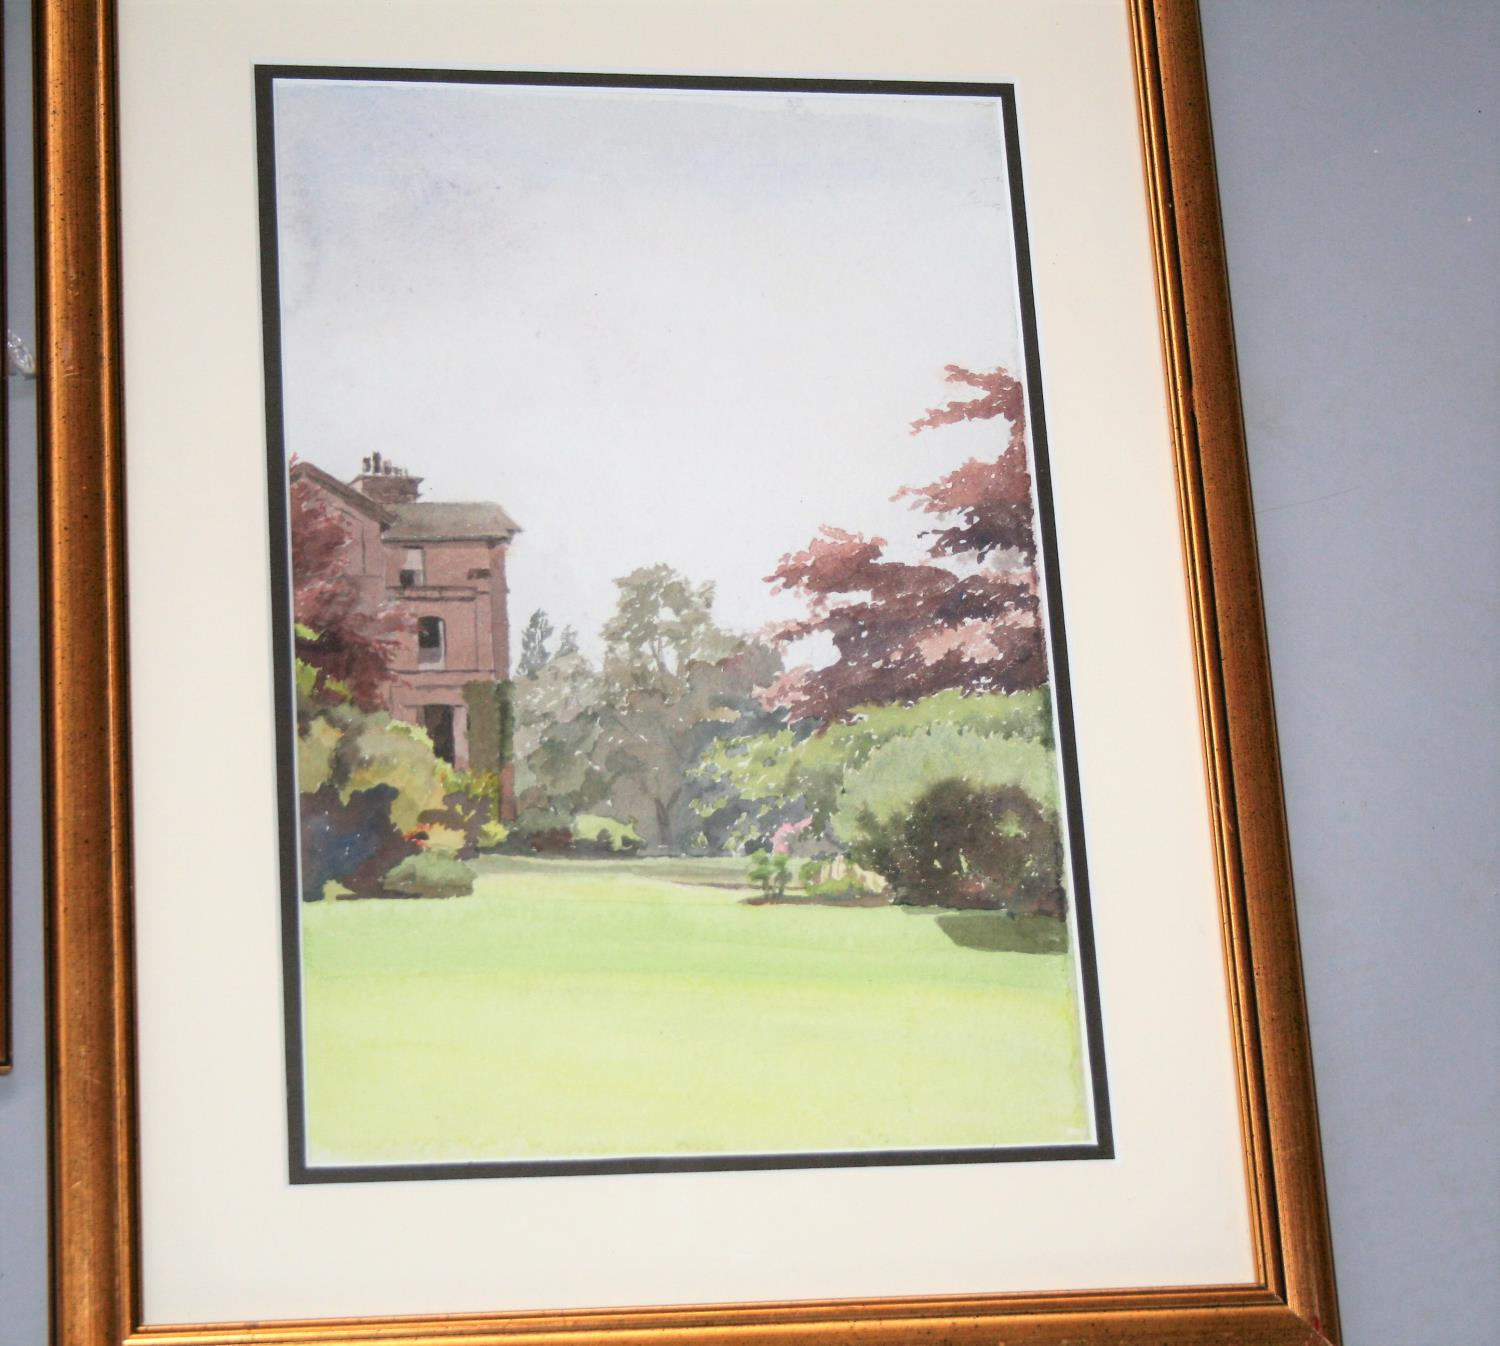 """Jose Irwin two gold framed watercolours - """"A village school & church"""" 53W x 43H and """"Mount Irwin"""" - Image 2 of 3"""